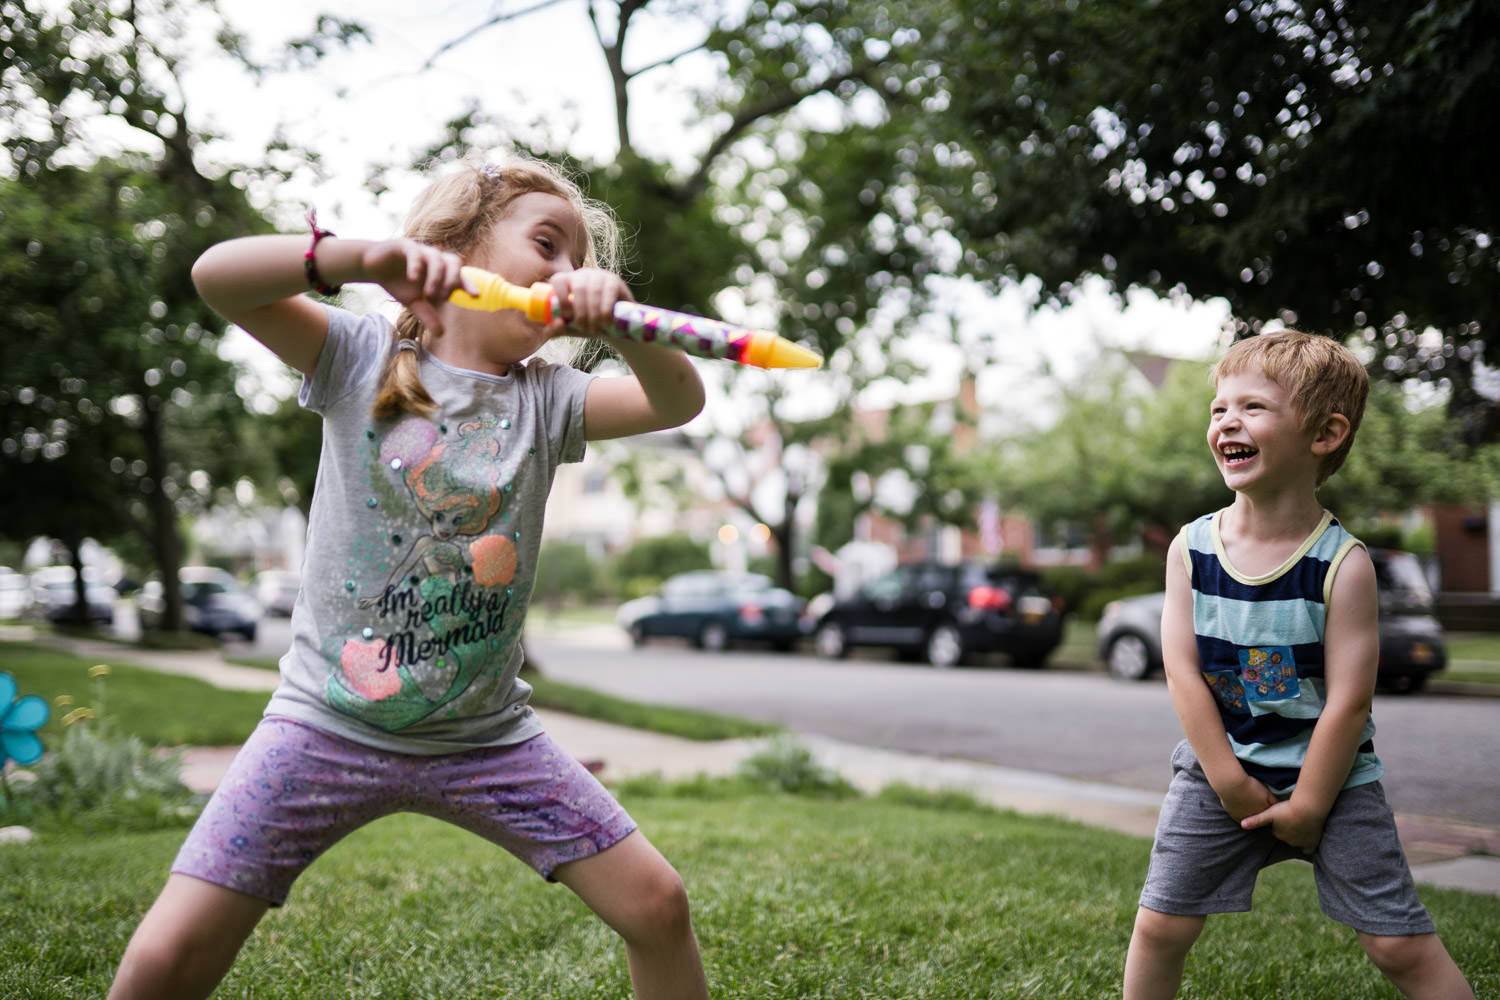 A little boy and girl play with a water gun.